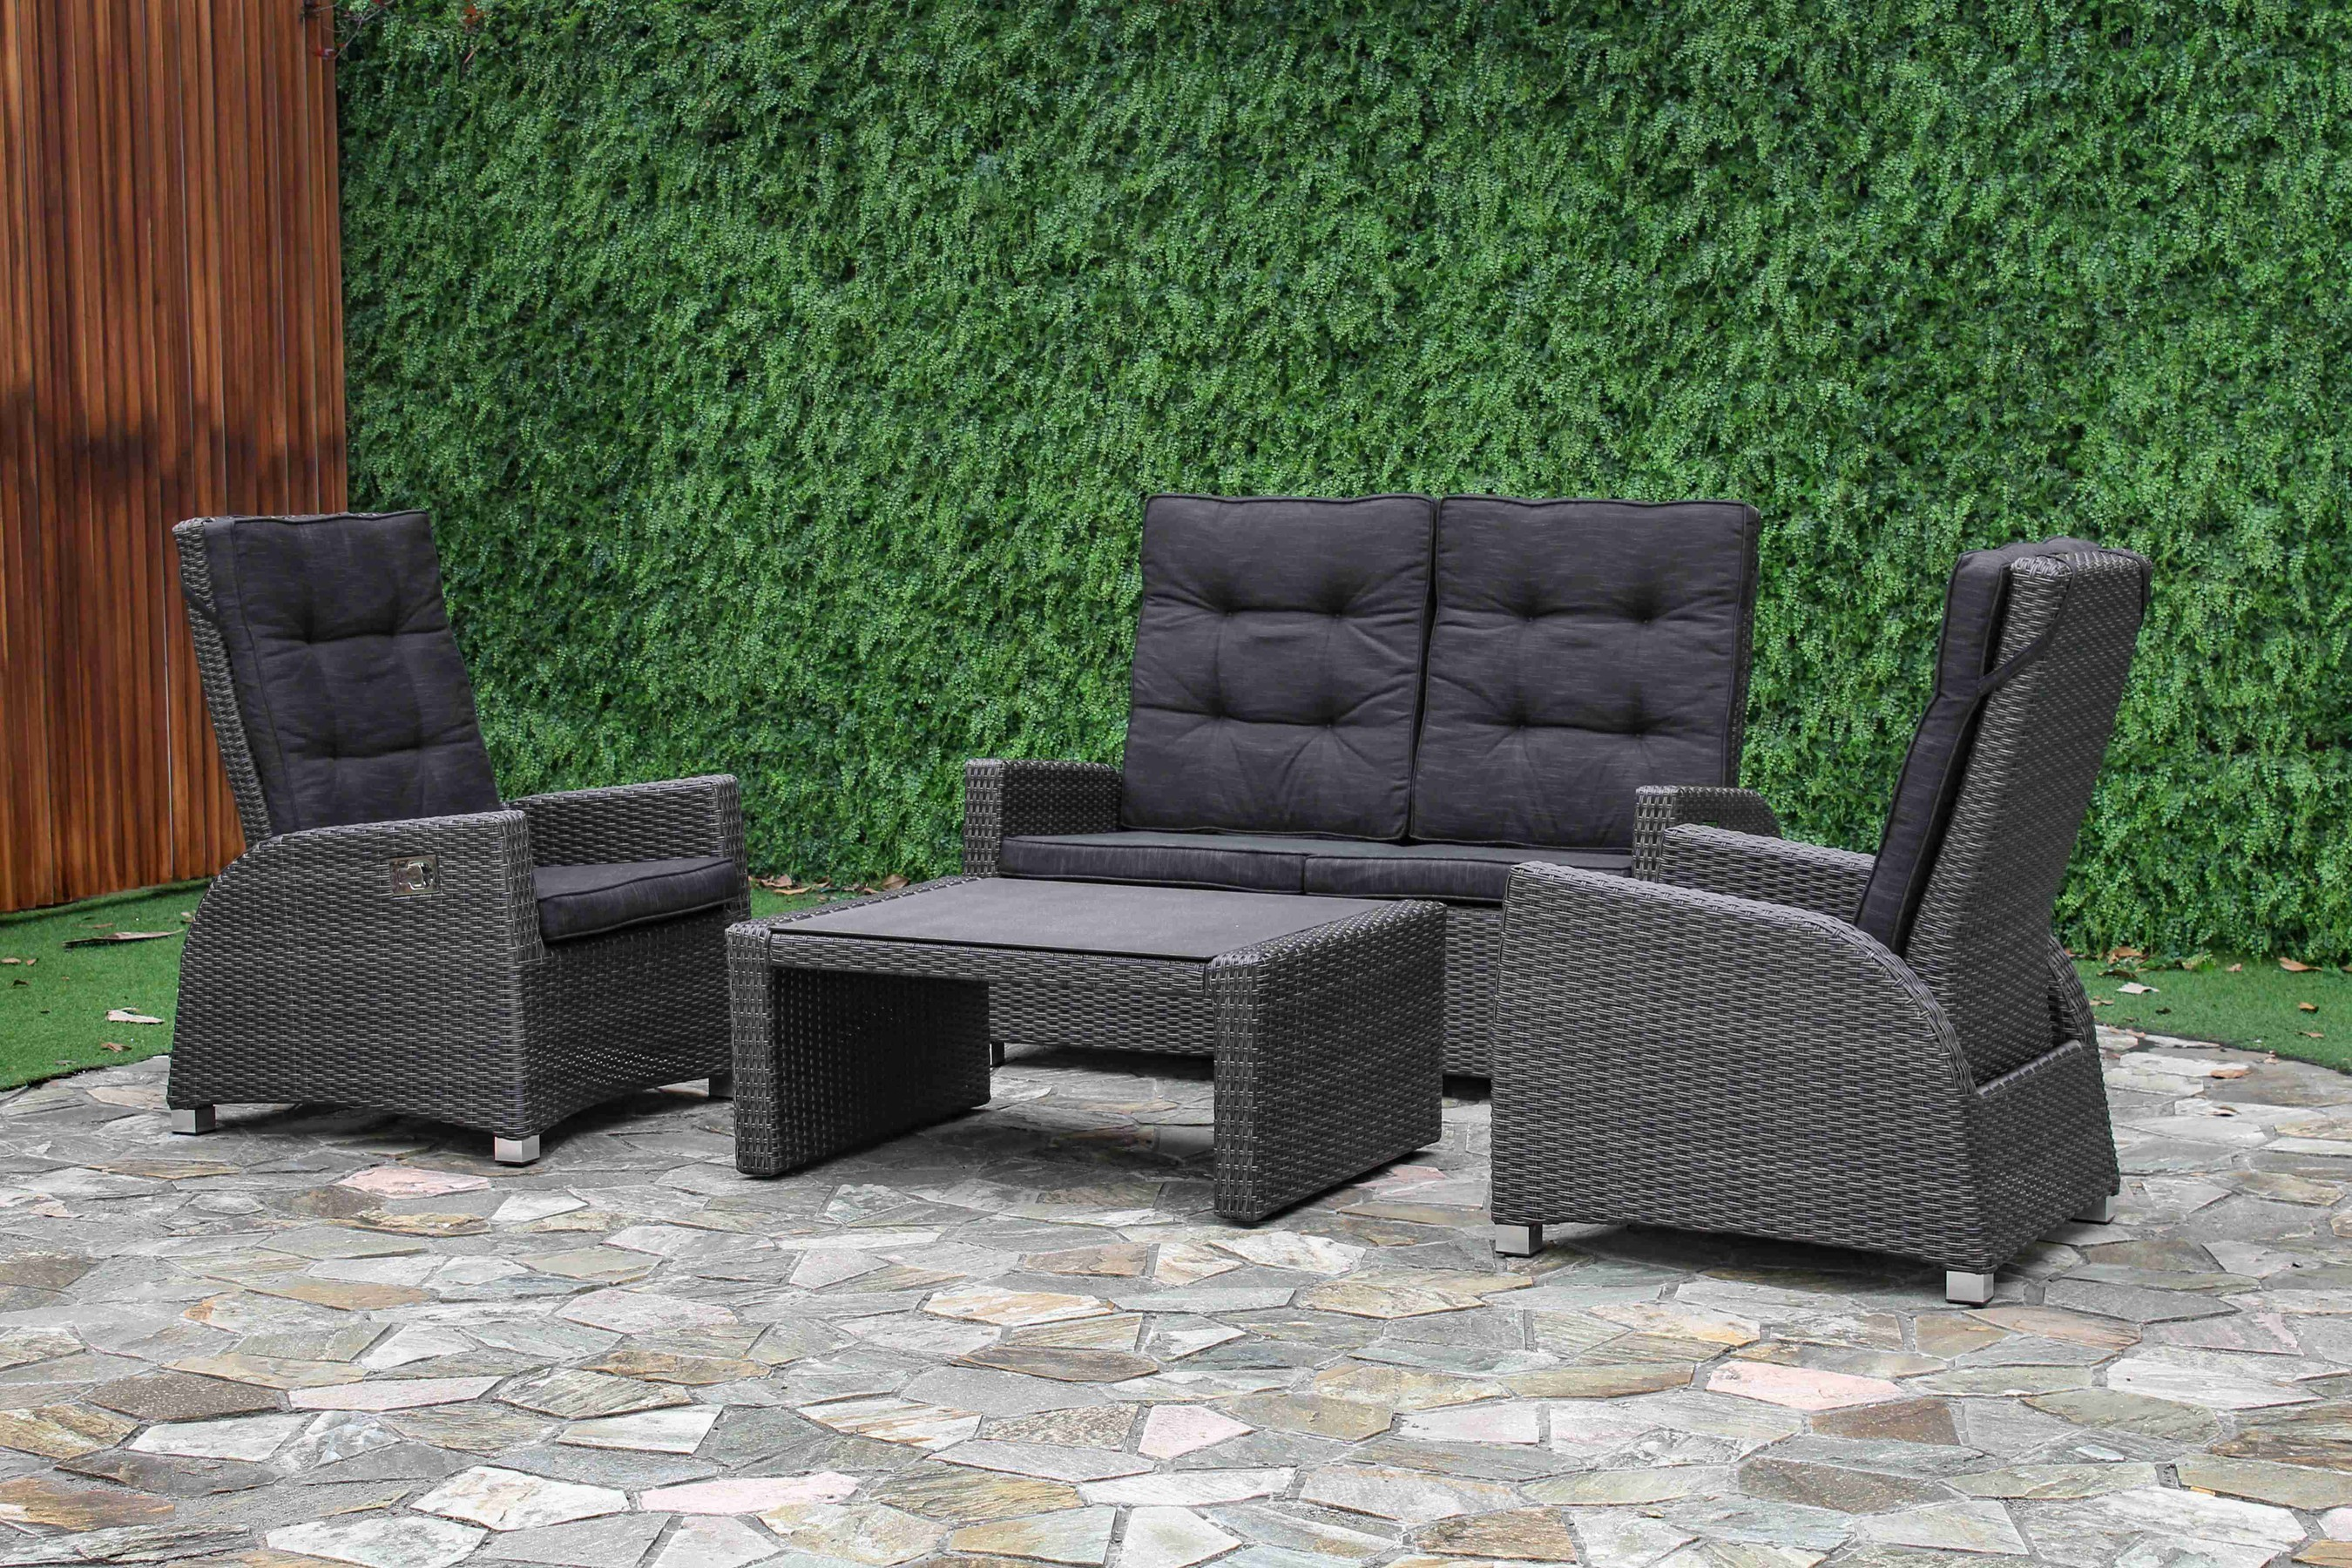 Loungemöbel Anthrazit Sungörl Loungemöbel Lounge Set Malaga Polyrattan